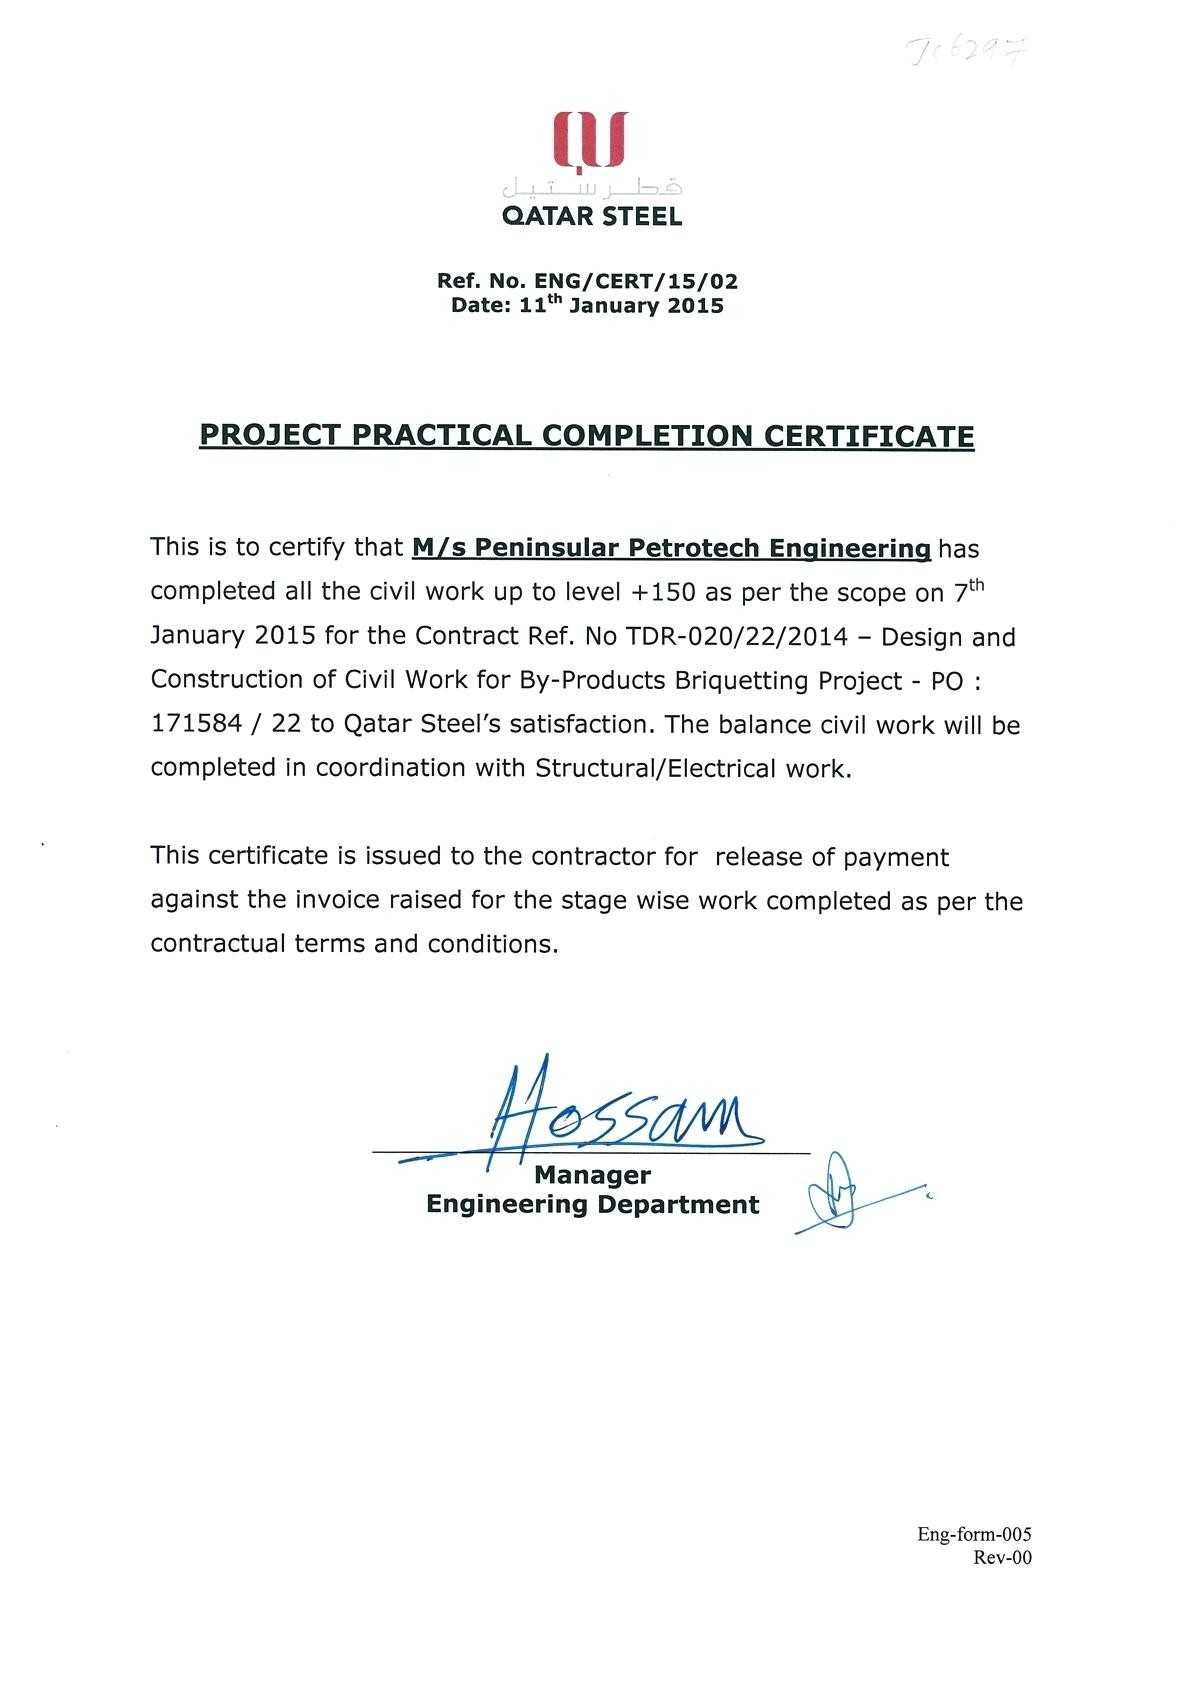 028 Construction Work Order Template Completion Certificate Pertaining To Practical Completion Certificate Template Uk